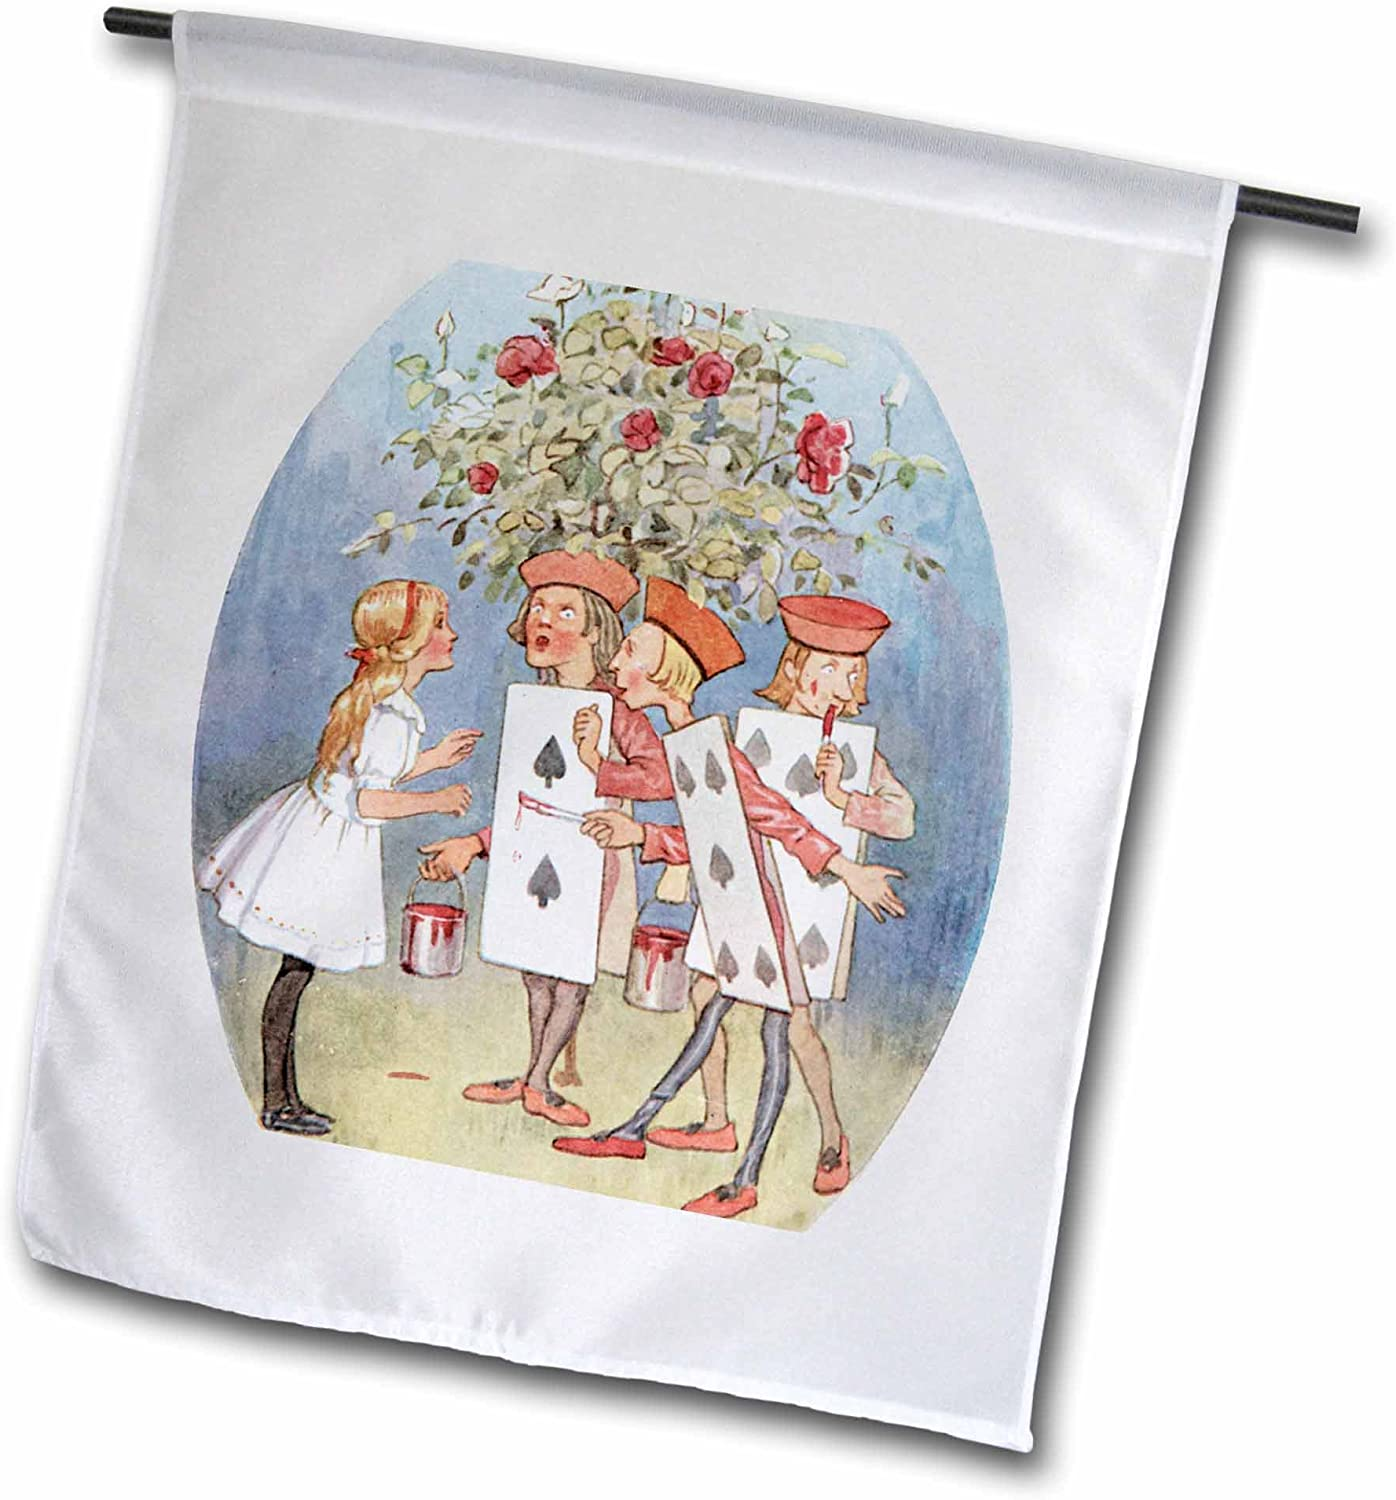 3dRose fl_110176_1 Painting The Roses Red Vintage Alice in Wonderland Garden Flag, 12 by 18-Inch